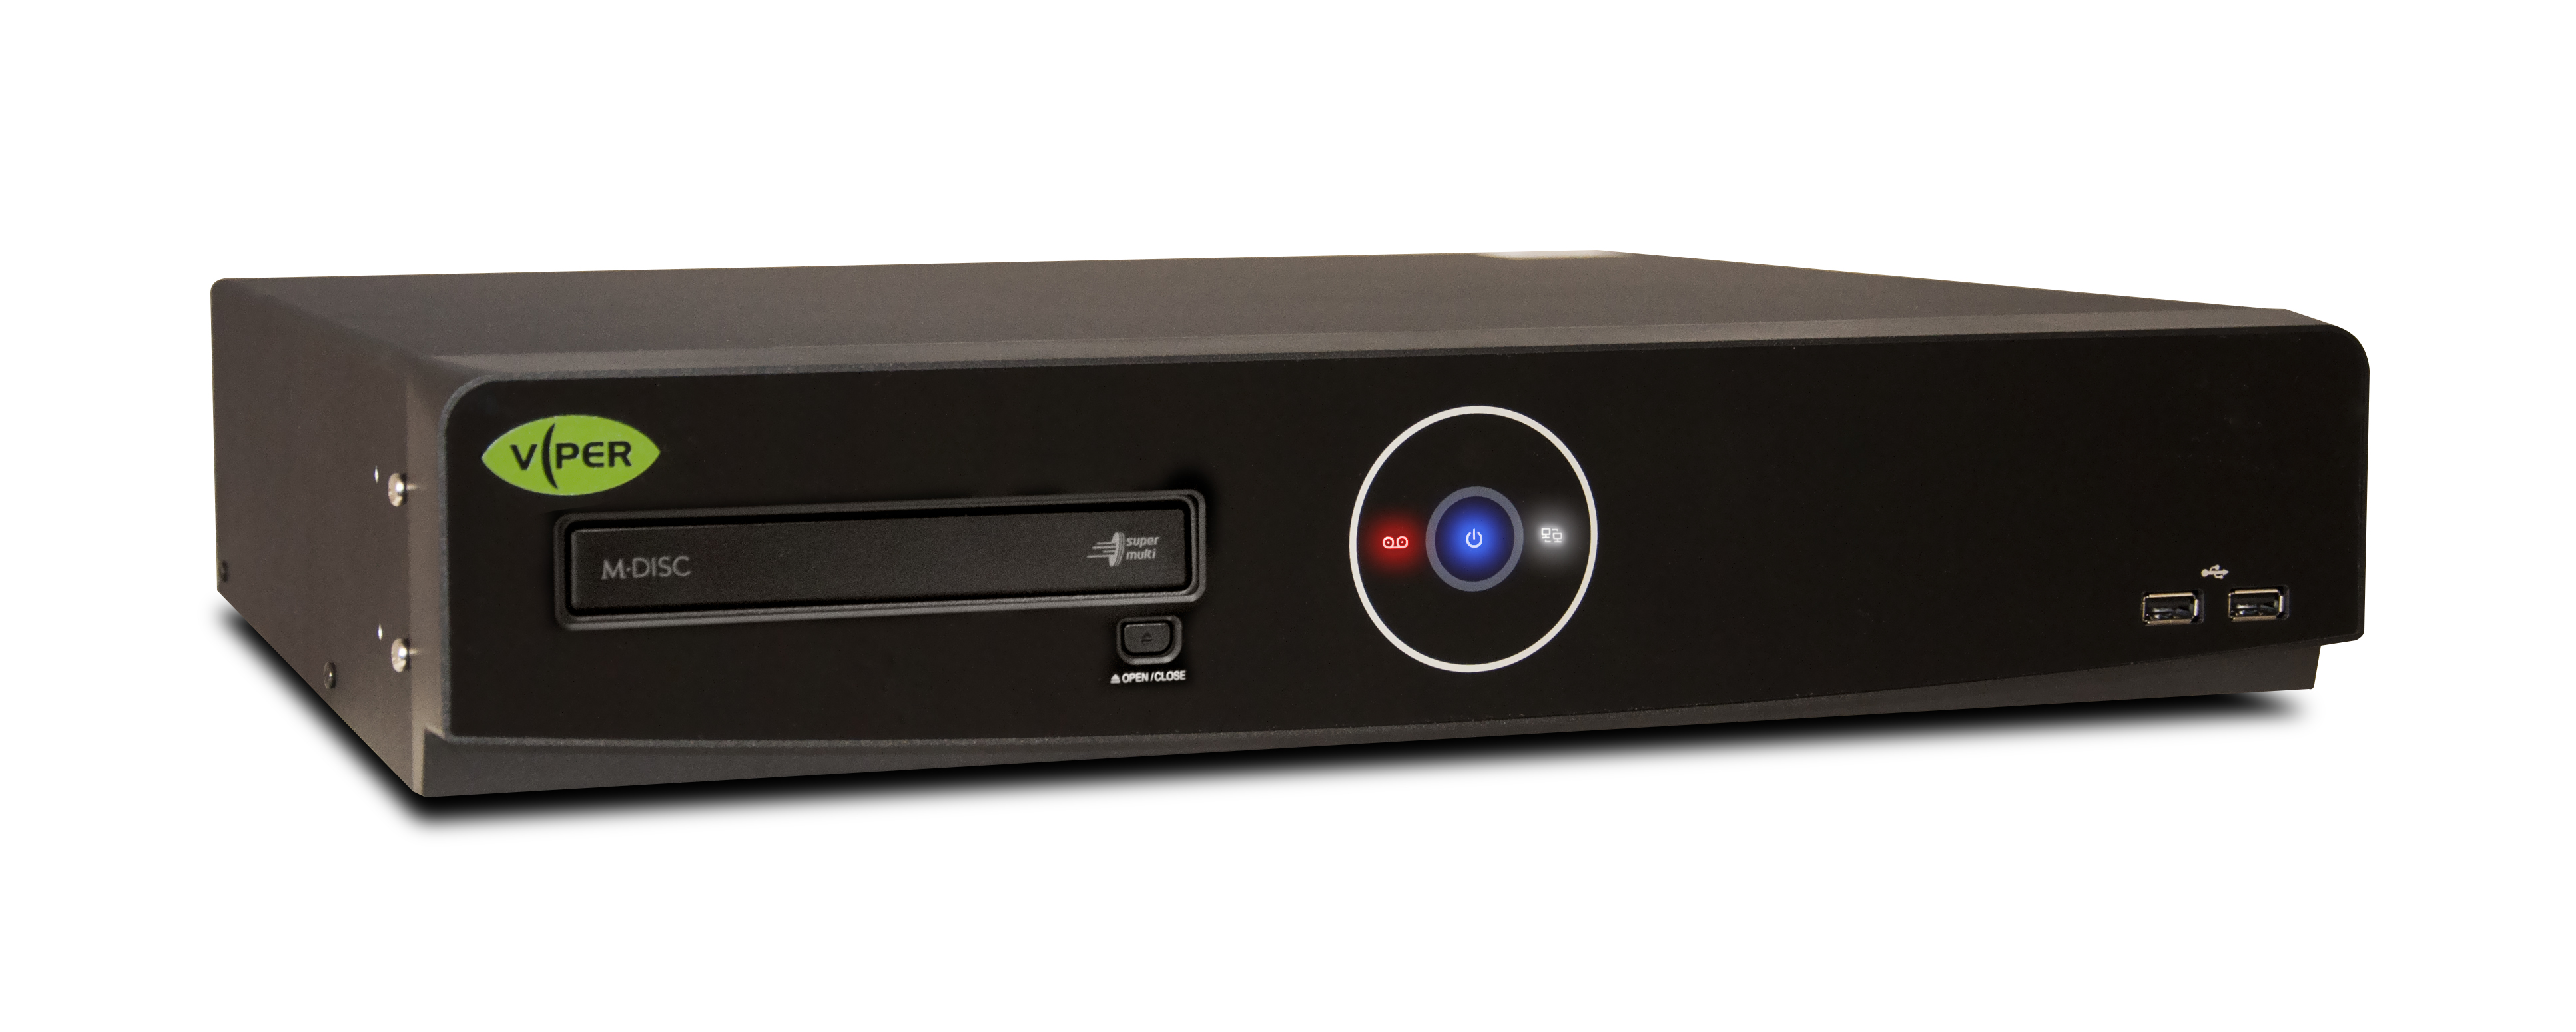 VIPER HDAL 16 Channel DVR - 8TB